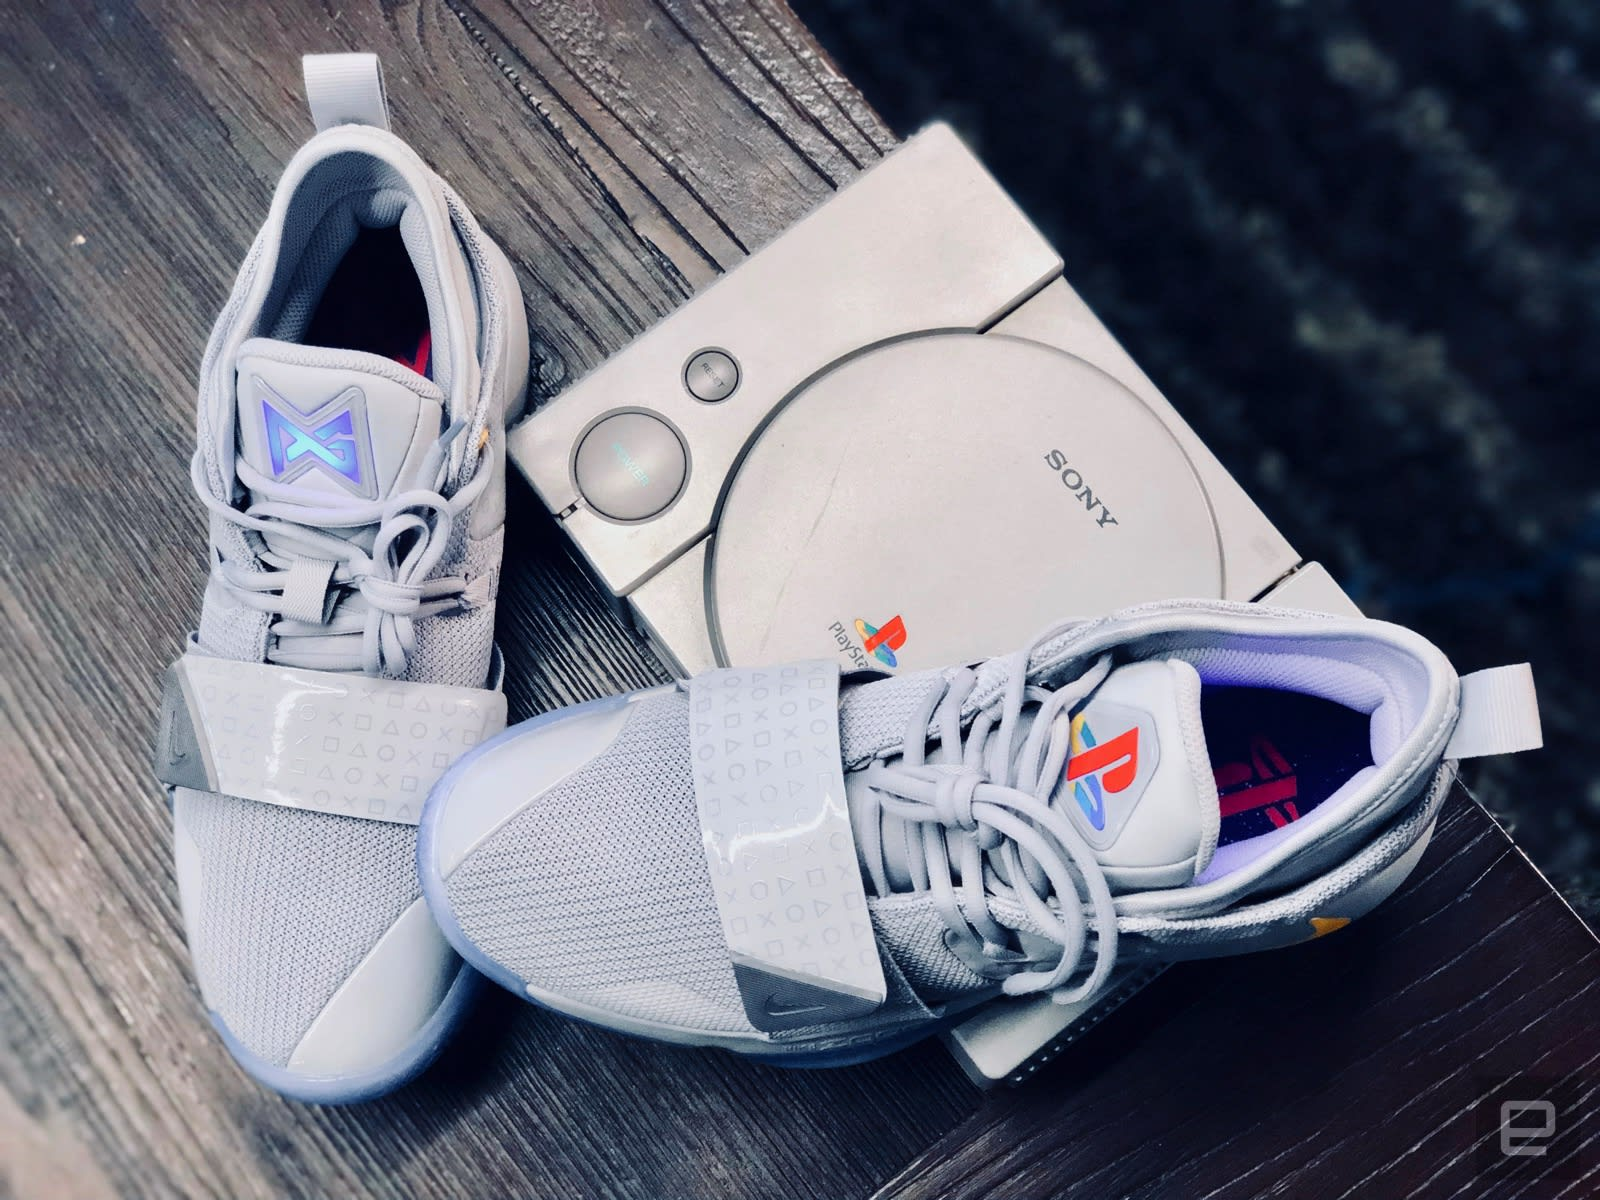 best sneakers 0f6cb 7e40b Nike's new PlayStation sneakers pay homage to Sony's classic ...